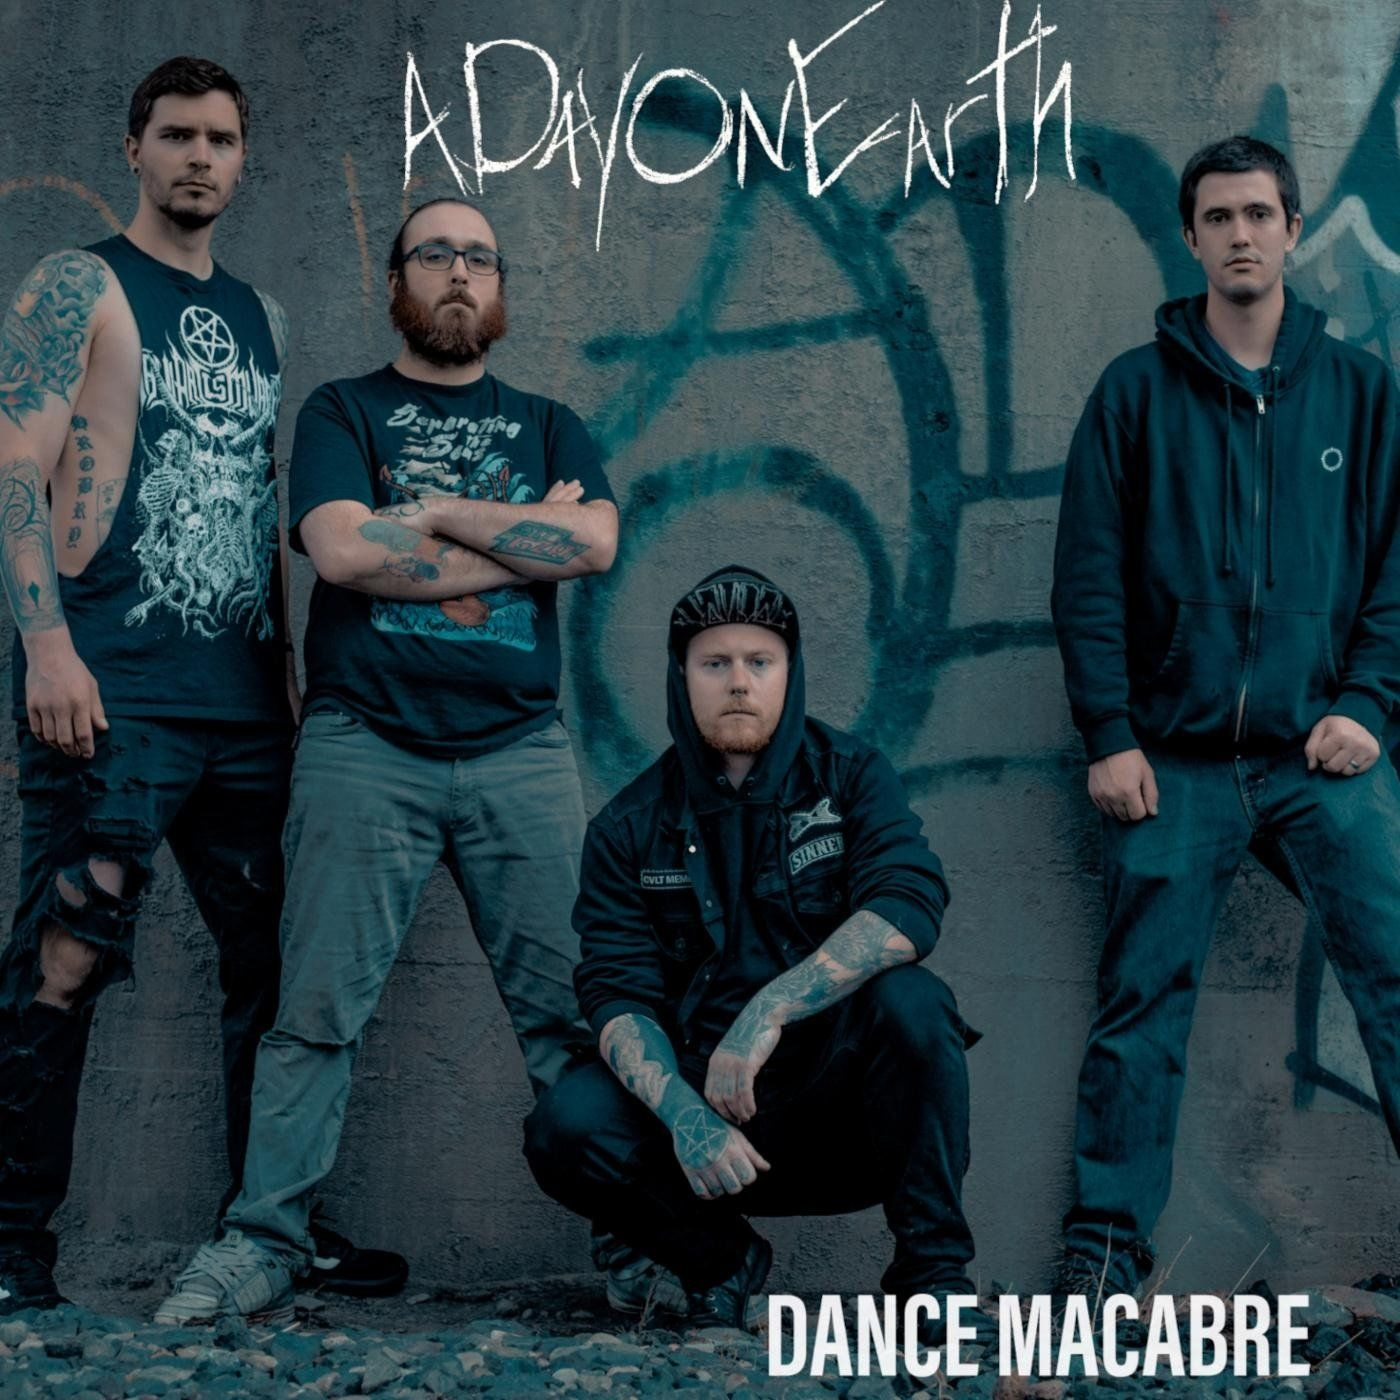 A Day on Earth - Dance Macabre [single] (2021)